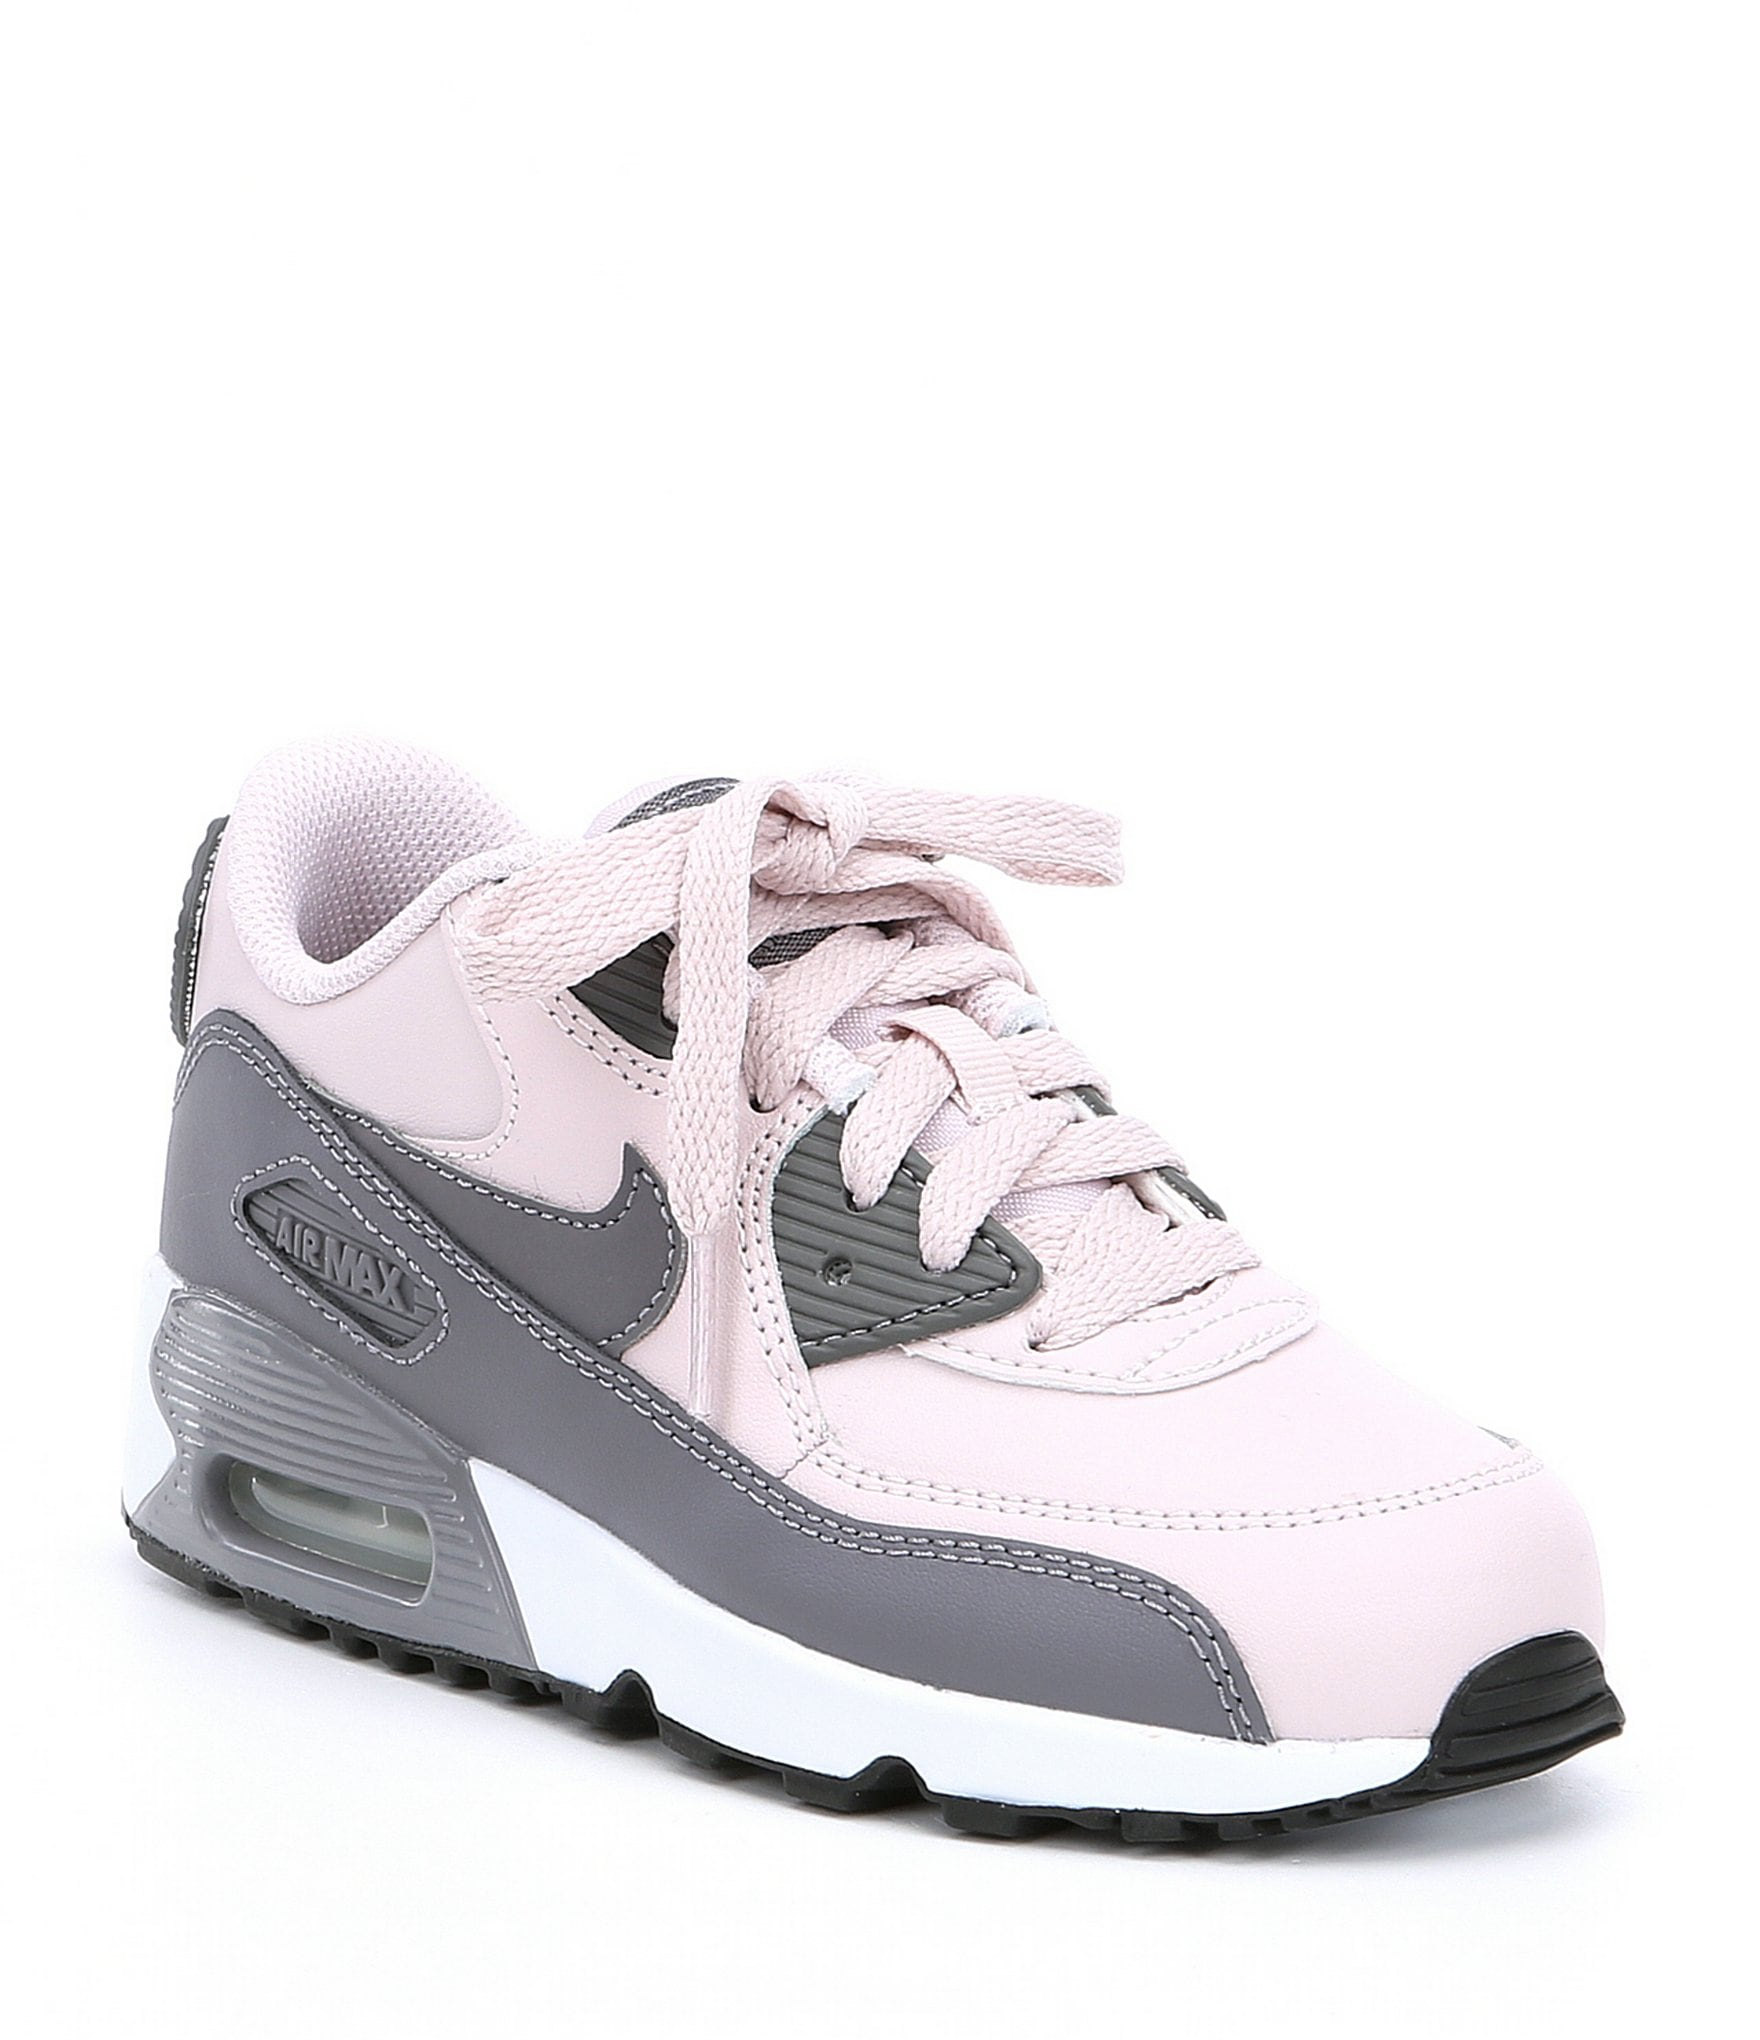 Nike Girls' Air Max 90 Sneakers | Dillards